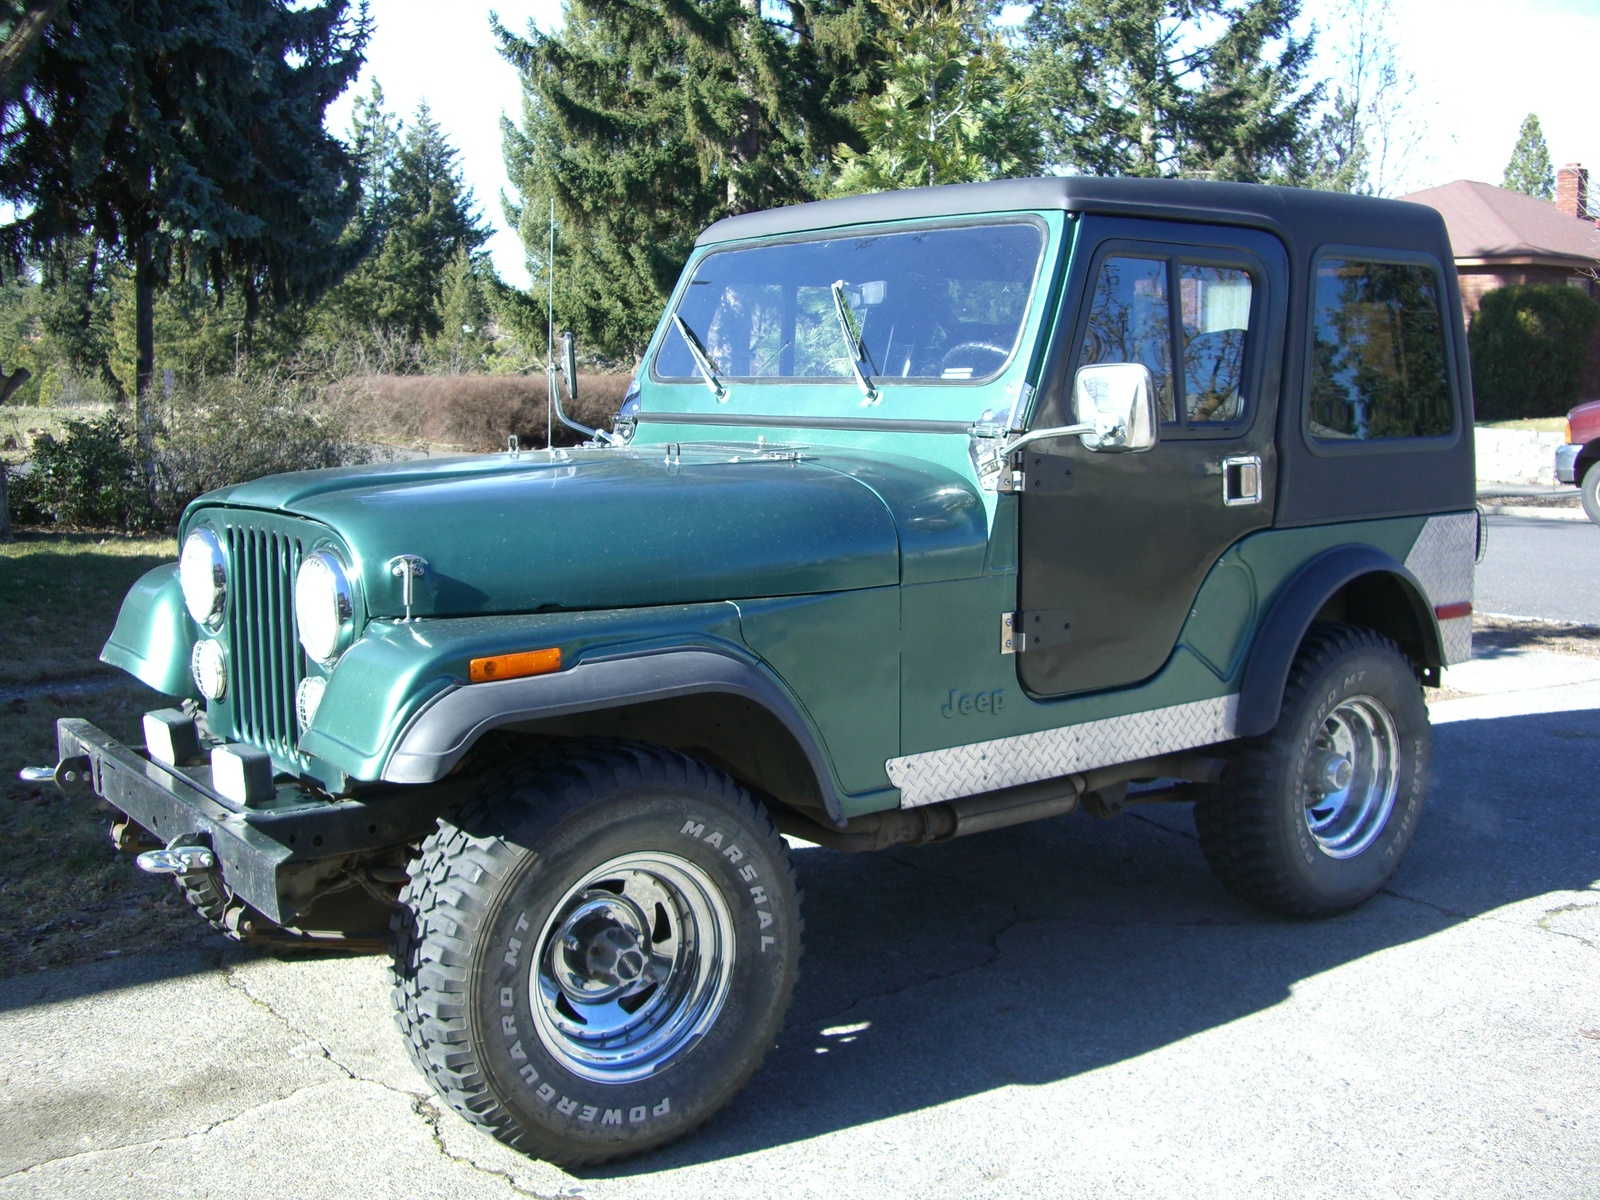 jeep cj 5 questions i have a 1980 jeep cj5 w 304v8 i\u0027ve replacedmight be blown or tripped, but i can find none and can find no reference online is there an ignition fuse and if so, where is it located?